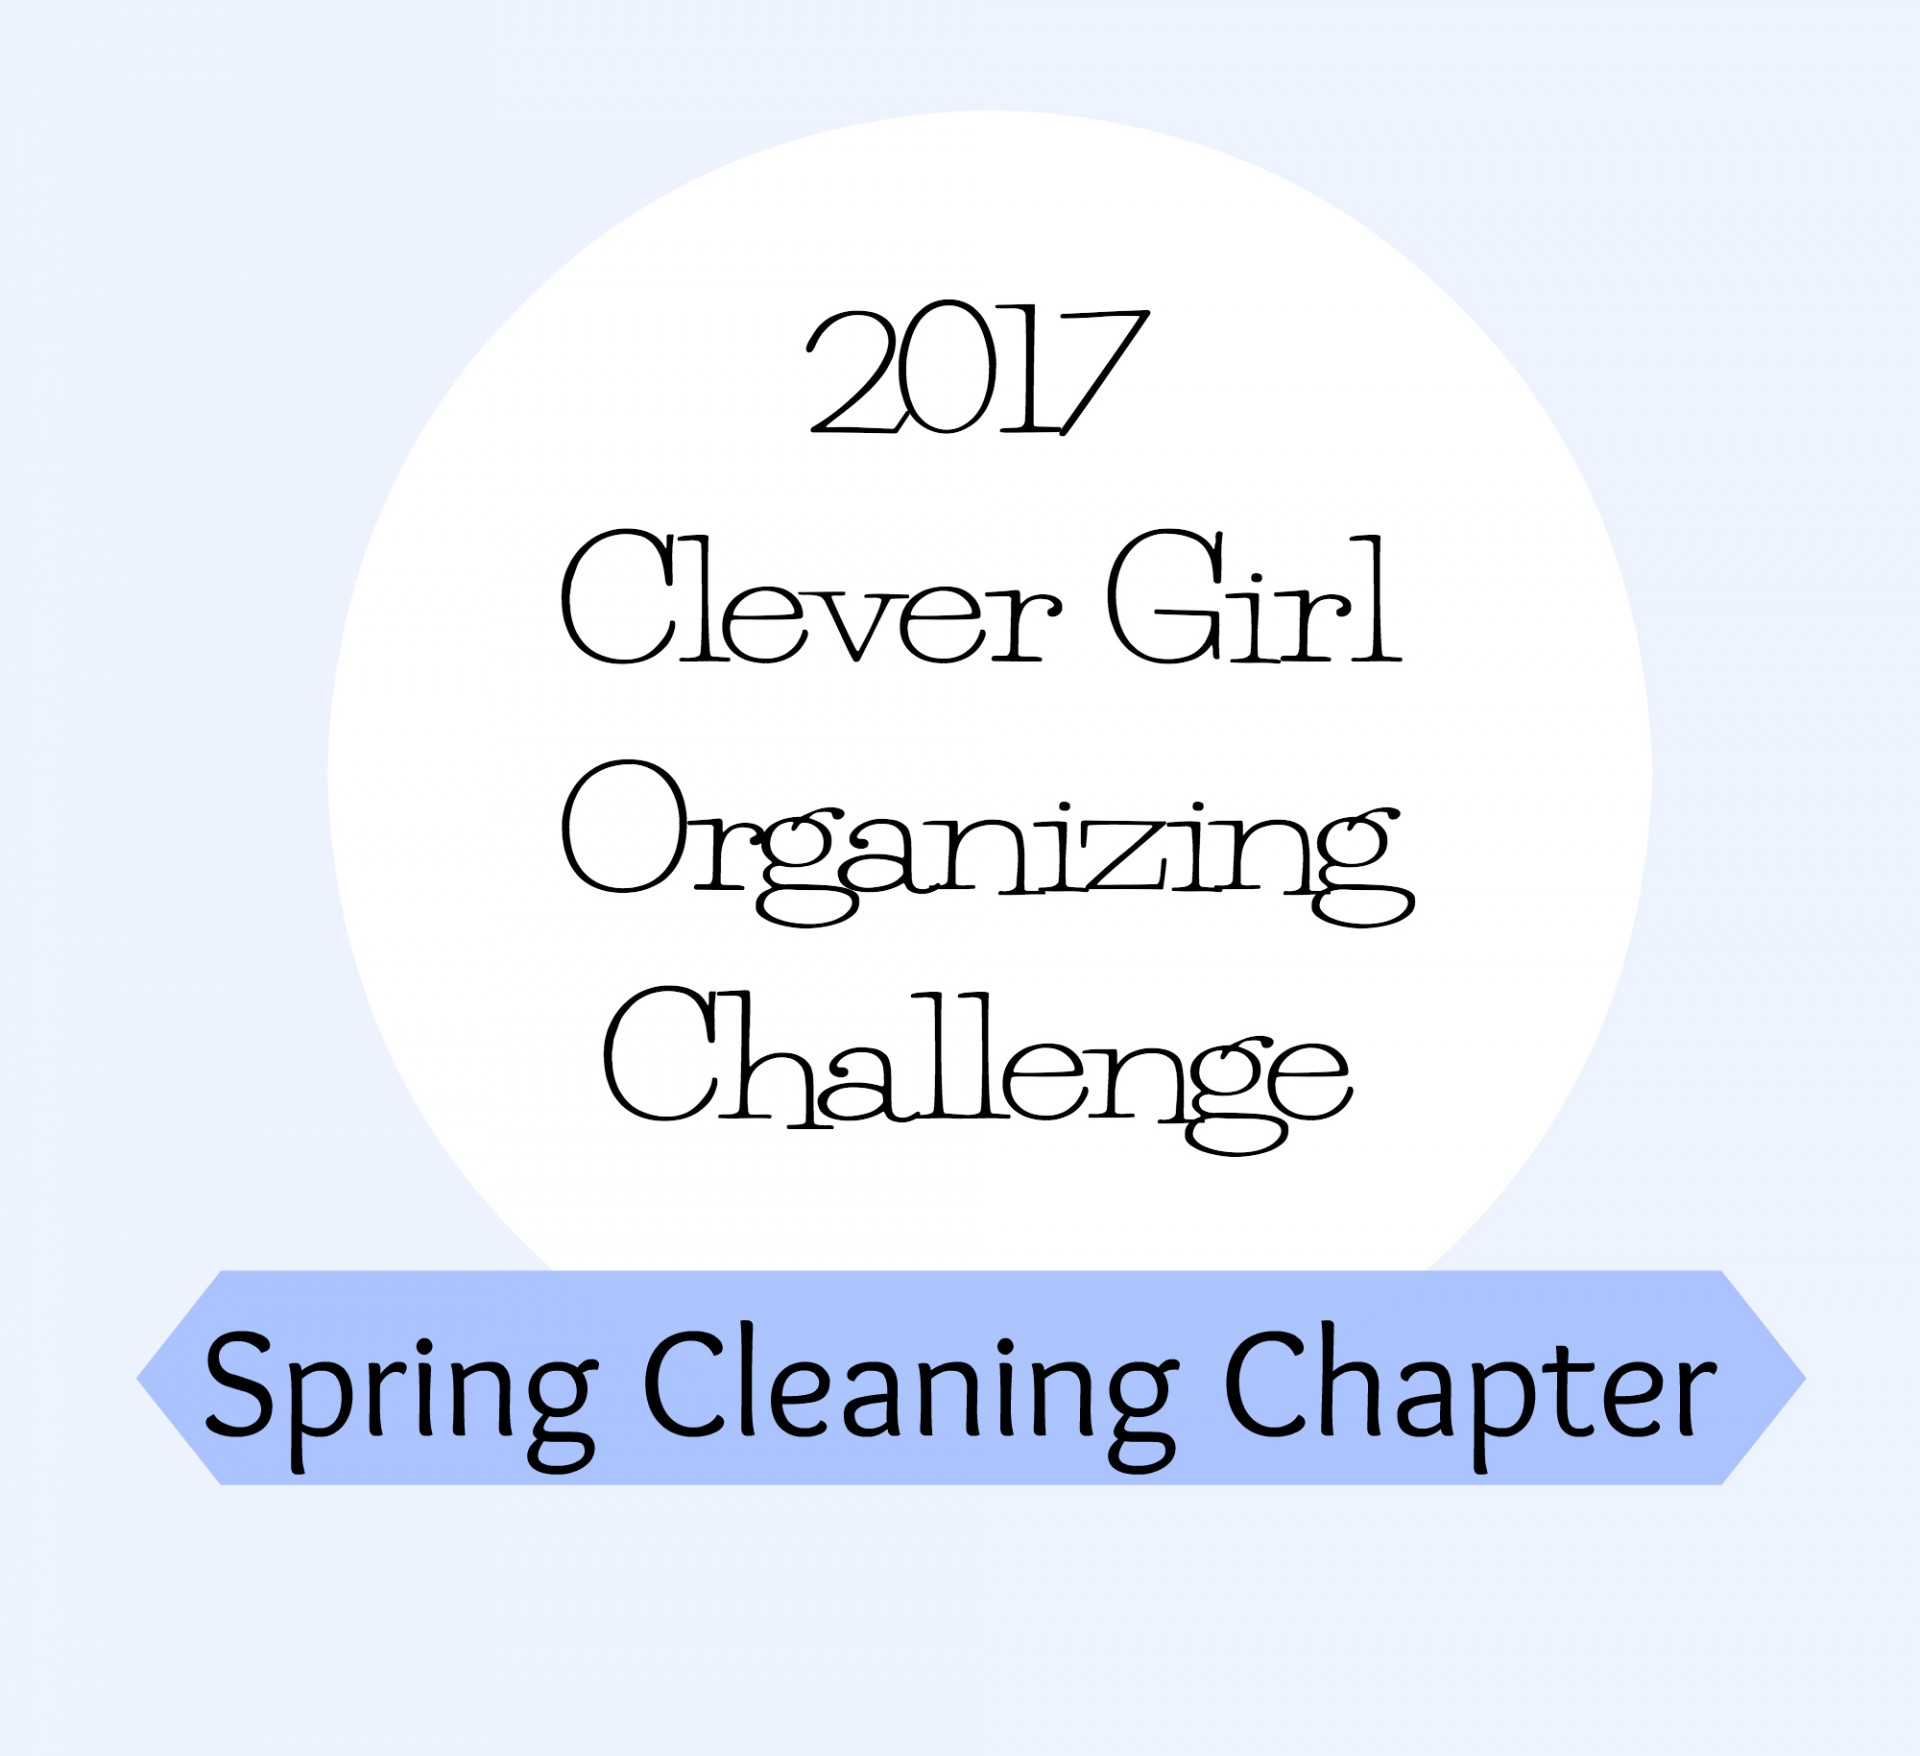 Spring Cleaning Organizing Challenge